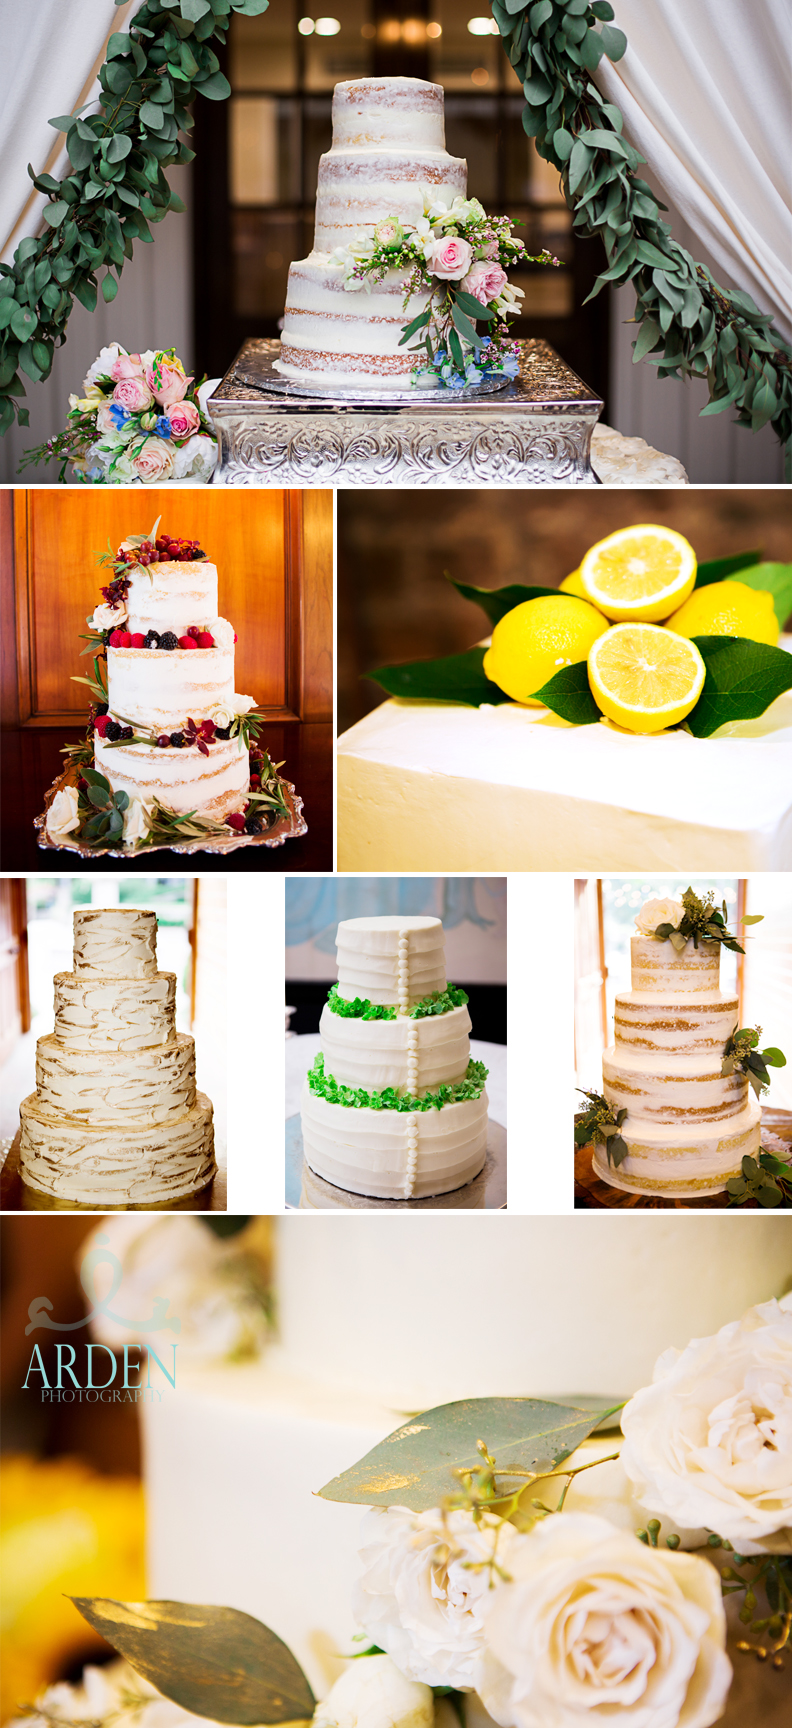 I think 2017's most popular cake was the deconstructed cake! What do you think?